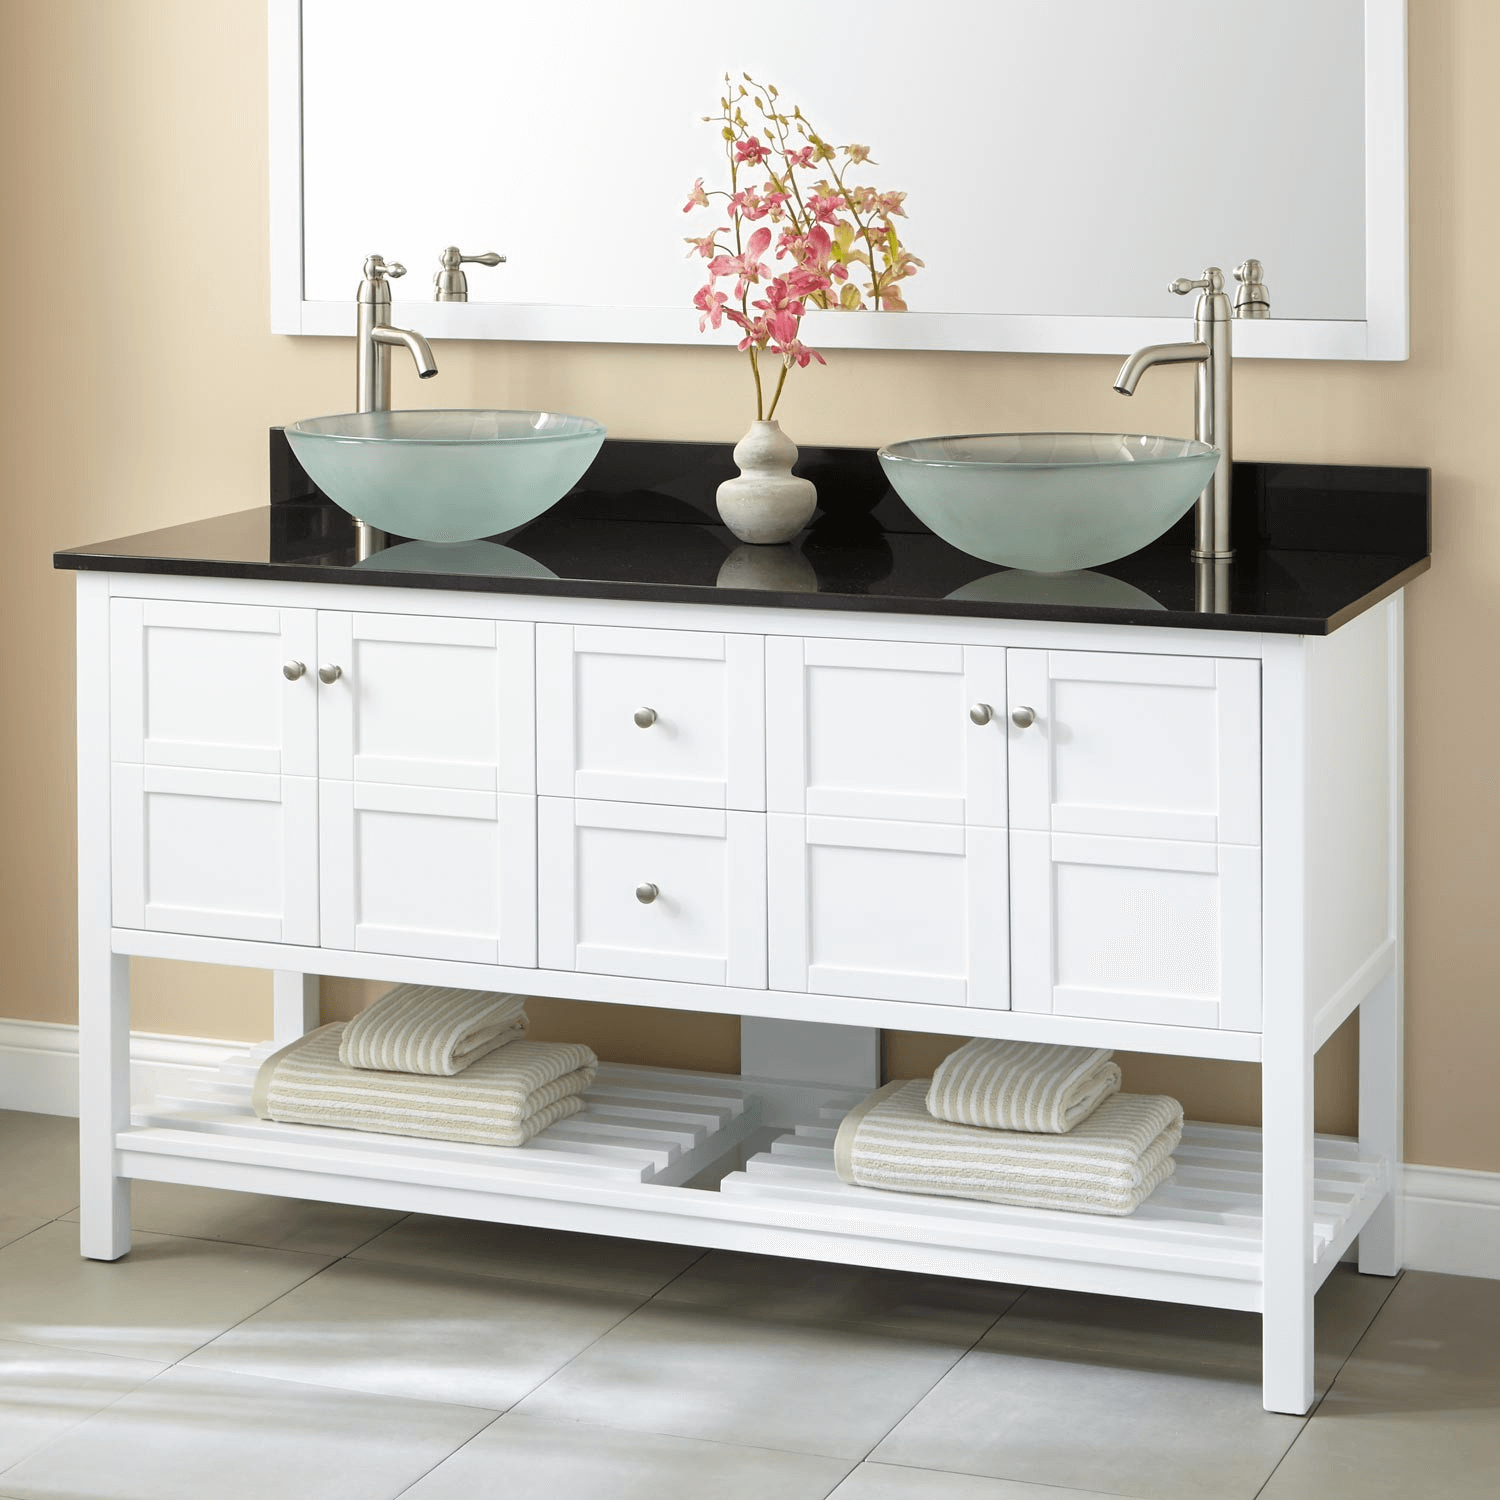 White double vanity with vessel sinks